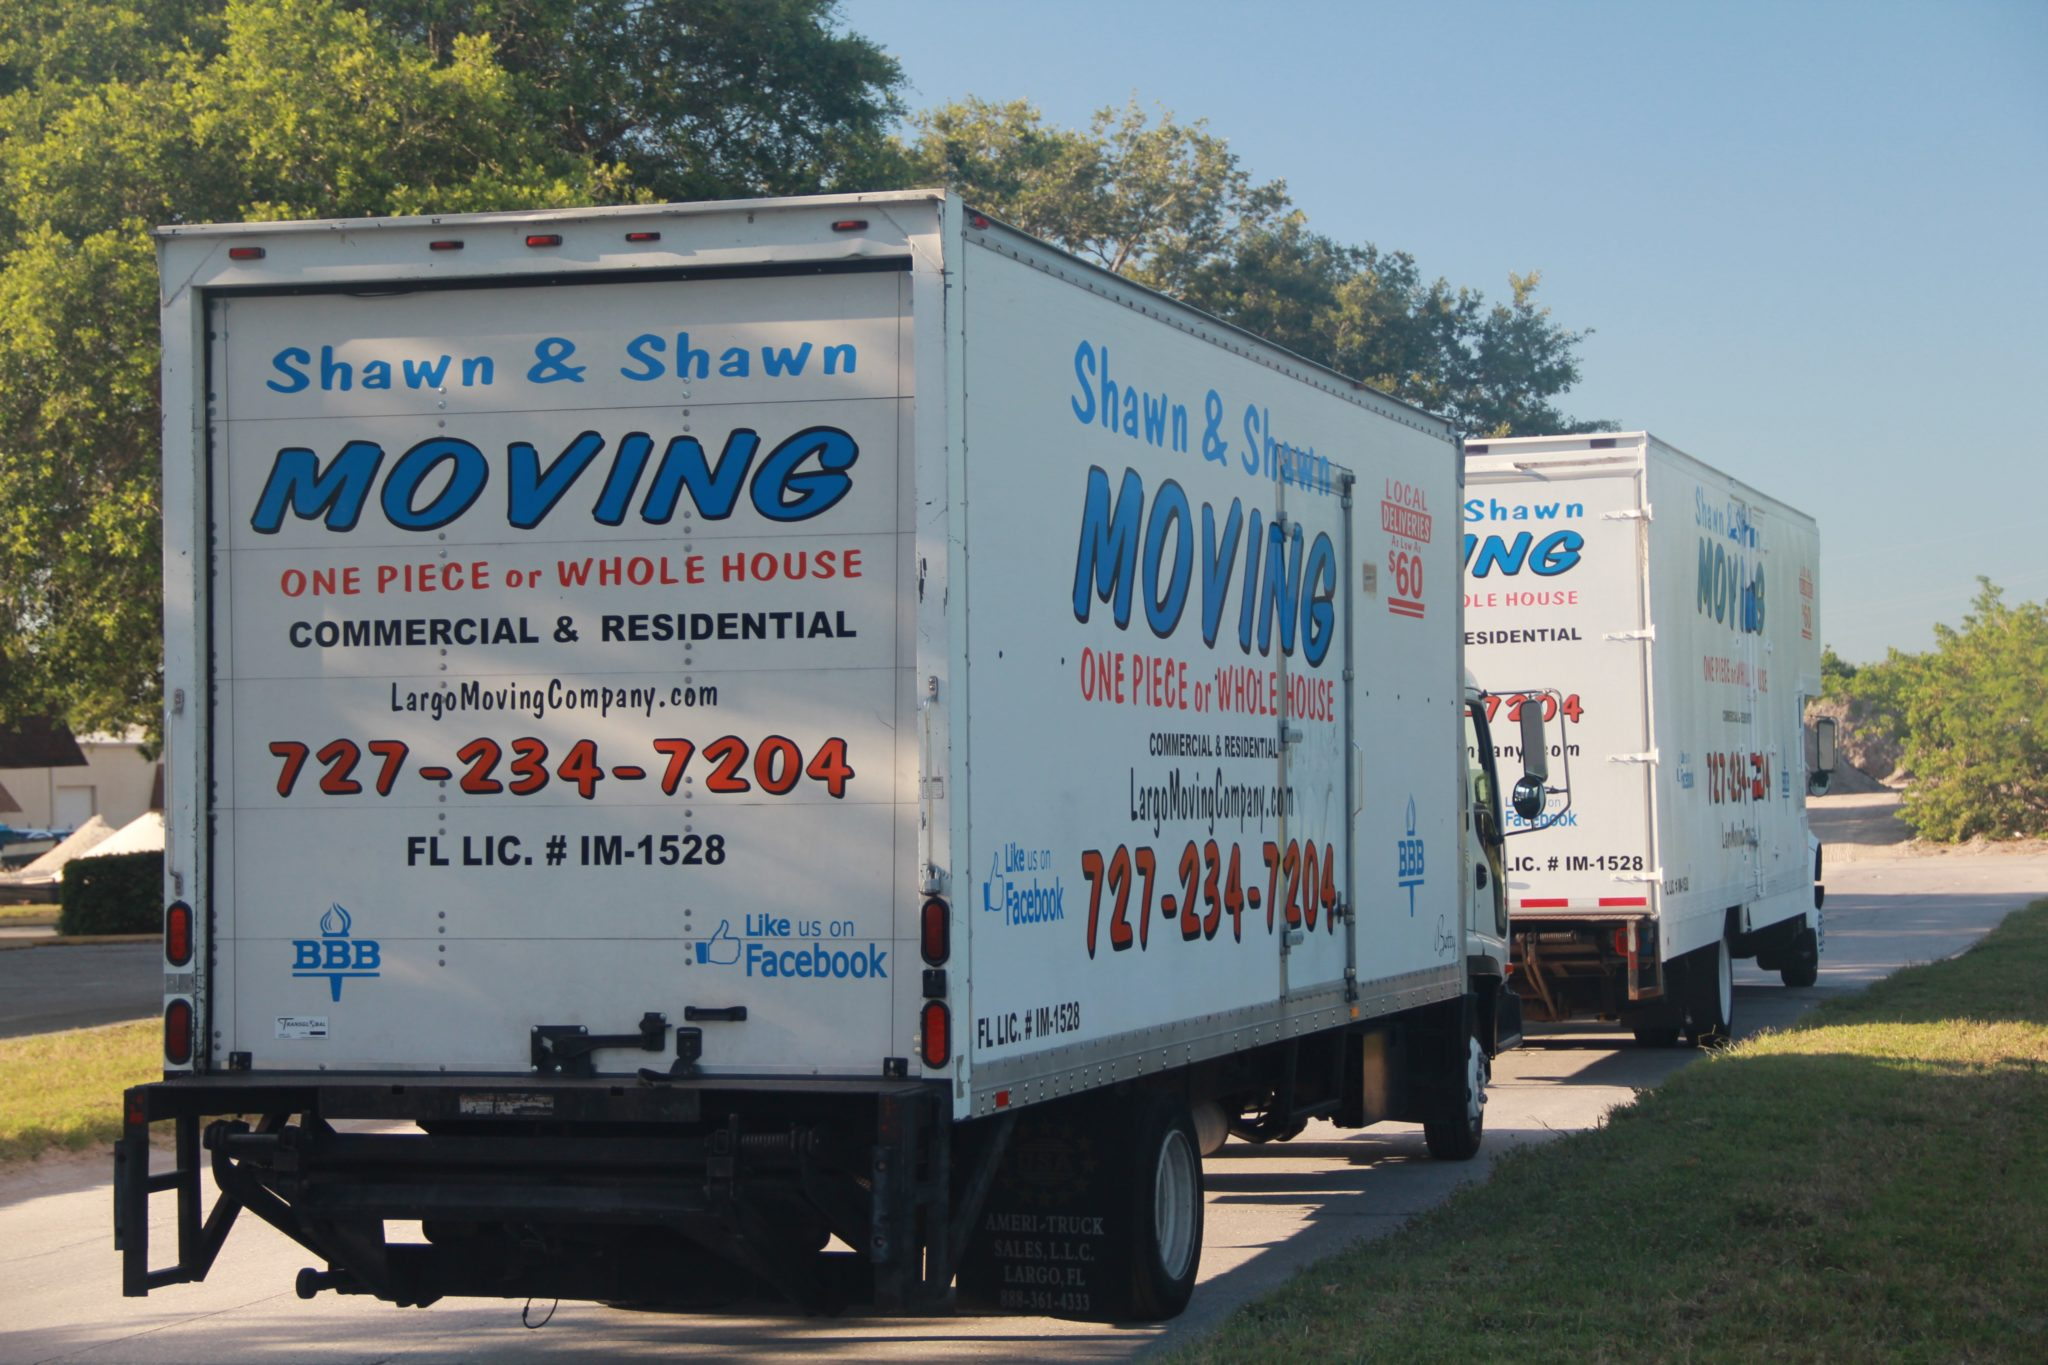 Indian Rocks Beach Movers | Shawn & Shawn Moving Company | Largo, Florida